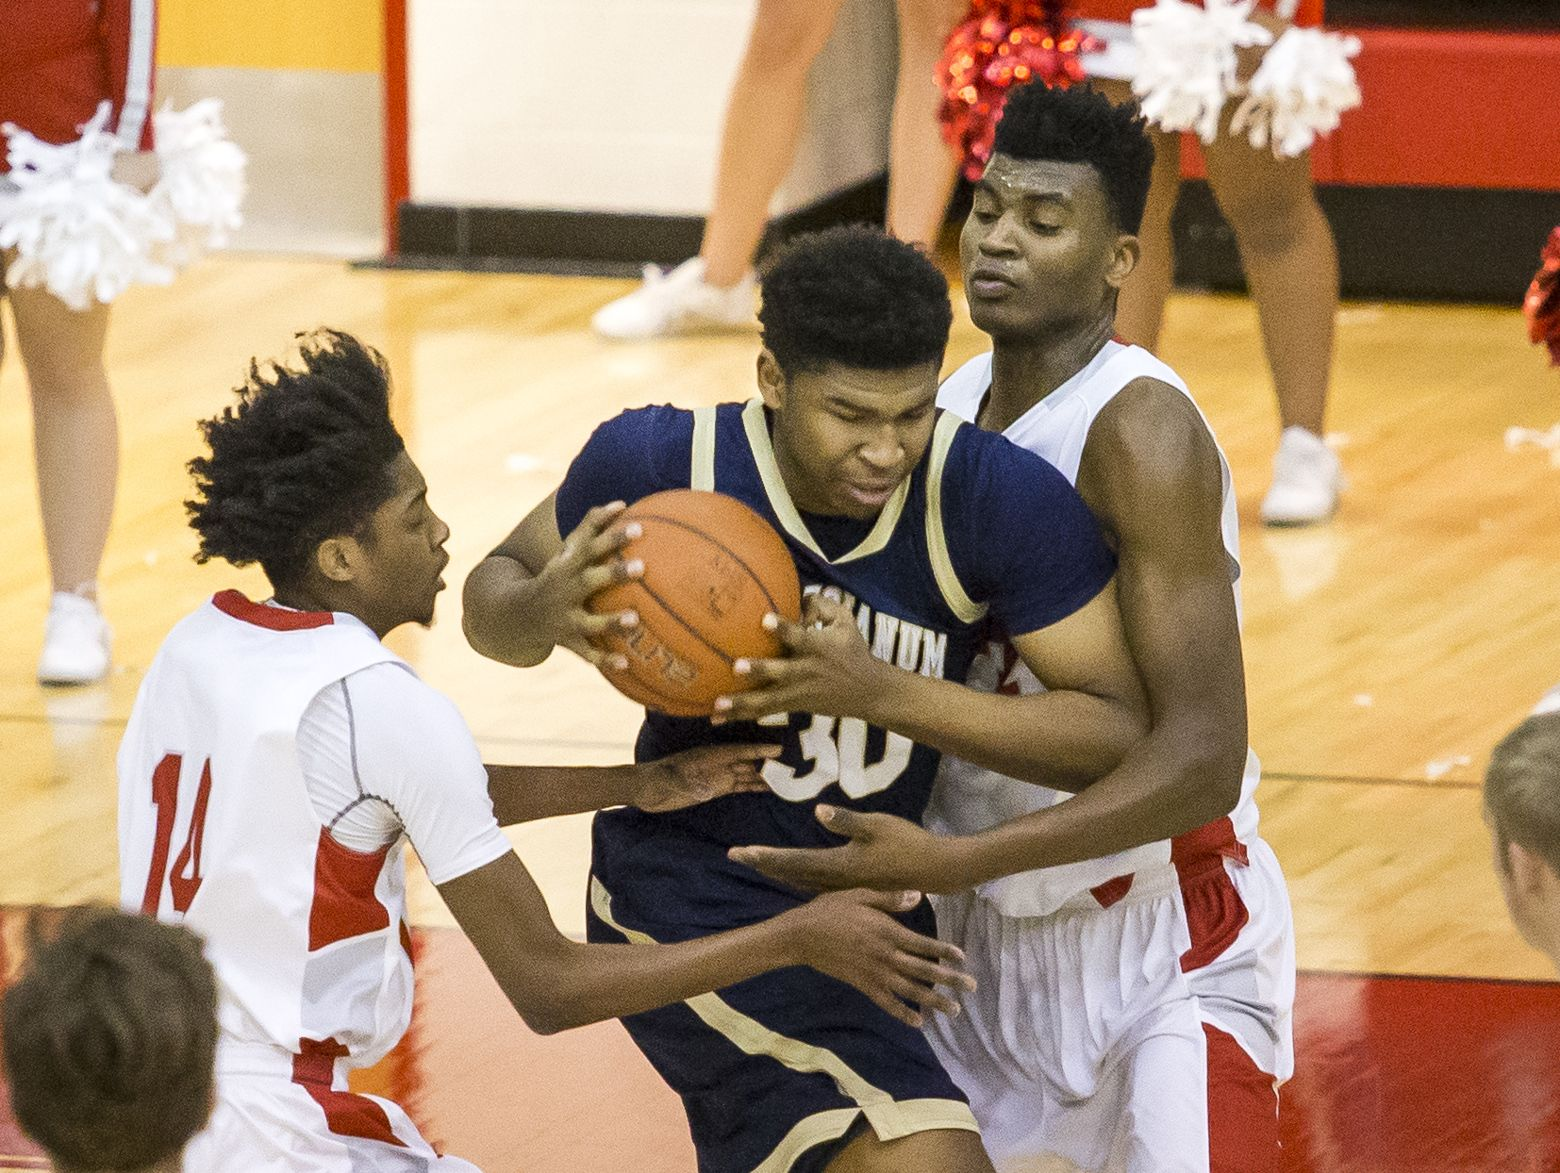 Salesianum's Tariq Ingraham is double teamed by Smyrna's Anthony Watson (No. 14) and Azubuike Nwankwoand in the first half of Smyrna's 53-40 win over Salesianum at Smyrna High School on Tuesday night.